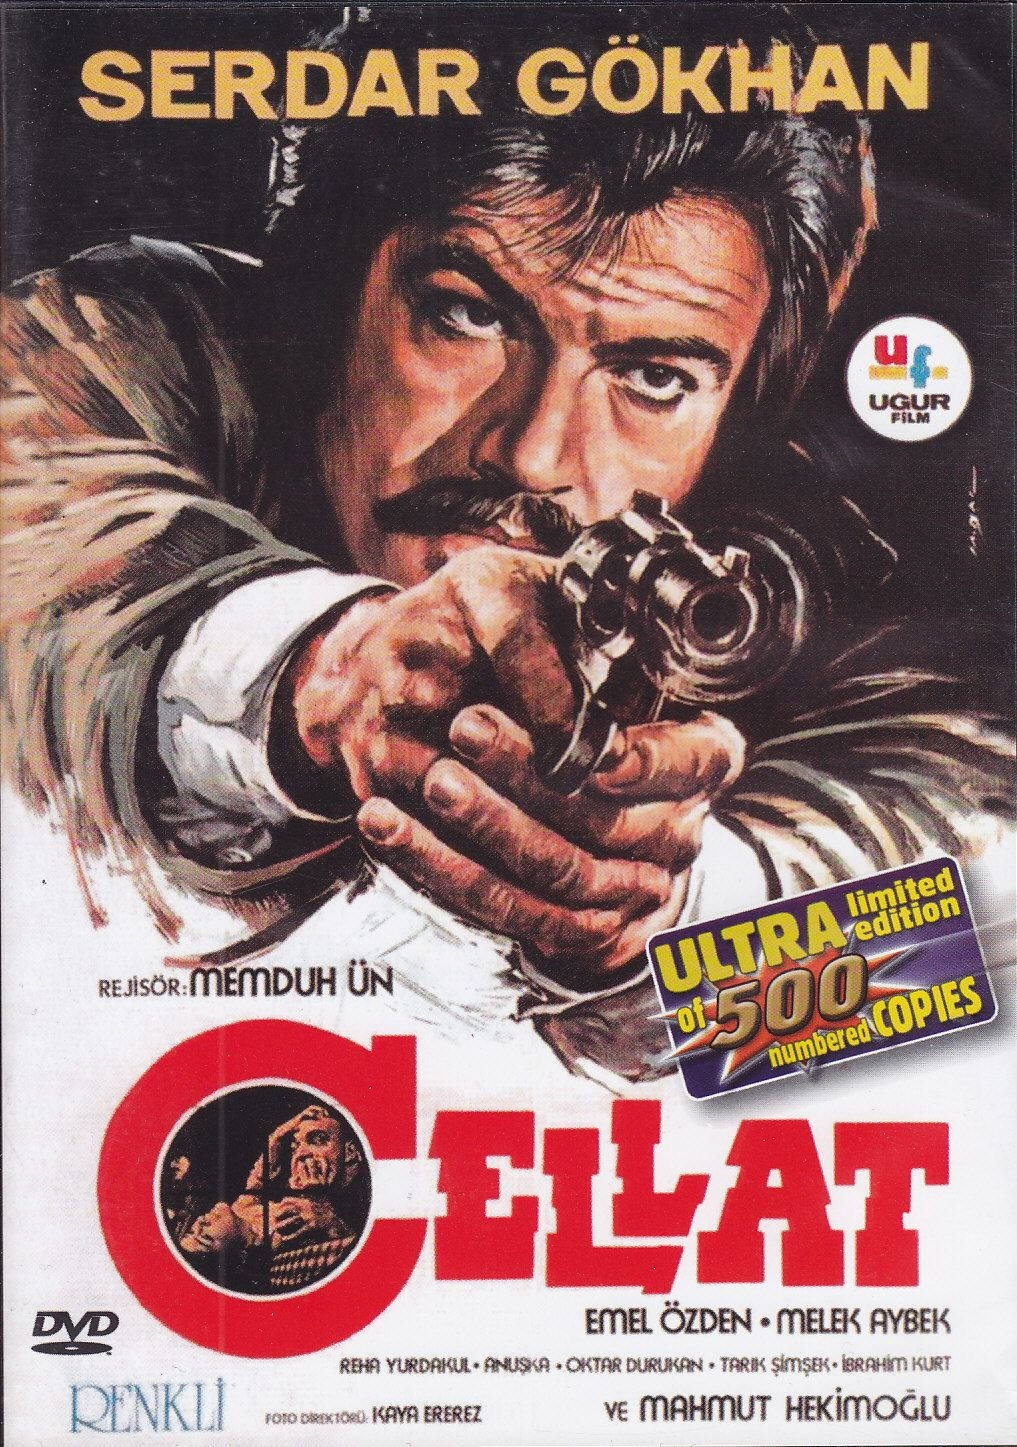 Bonus: Cellat (1975) [aka Turkish Death Wish]